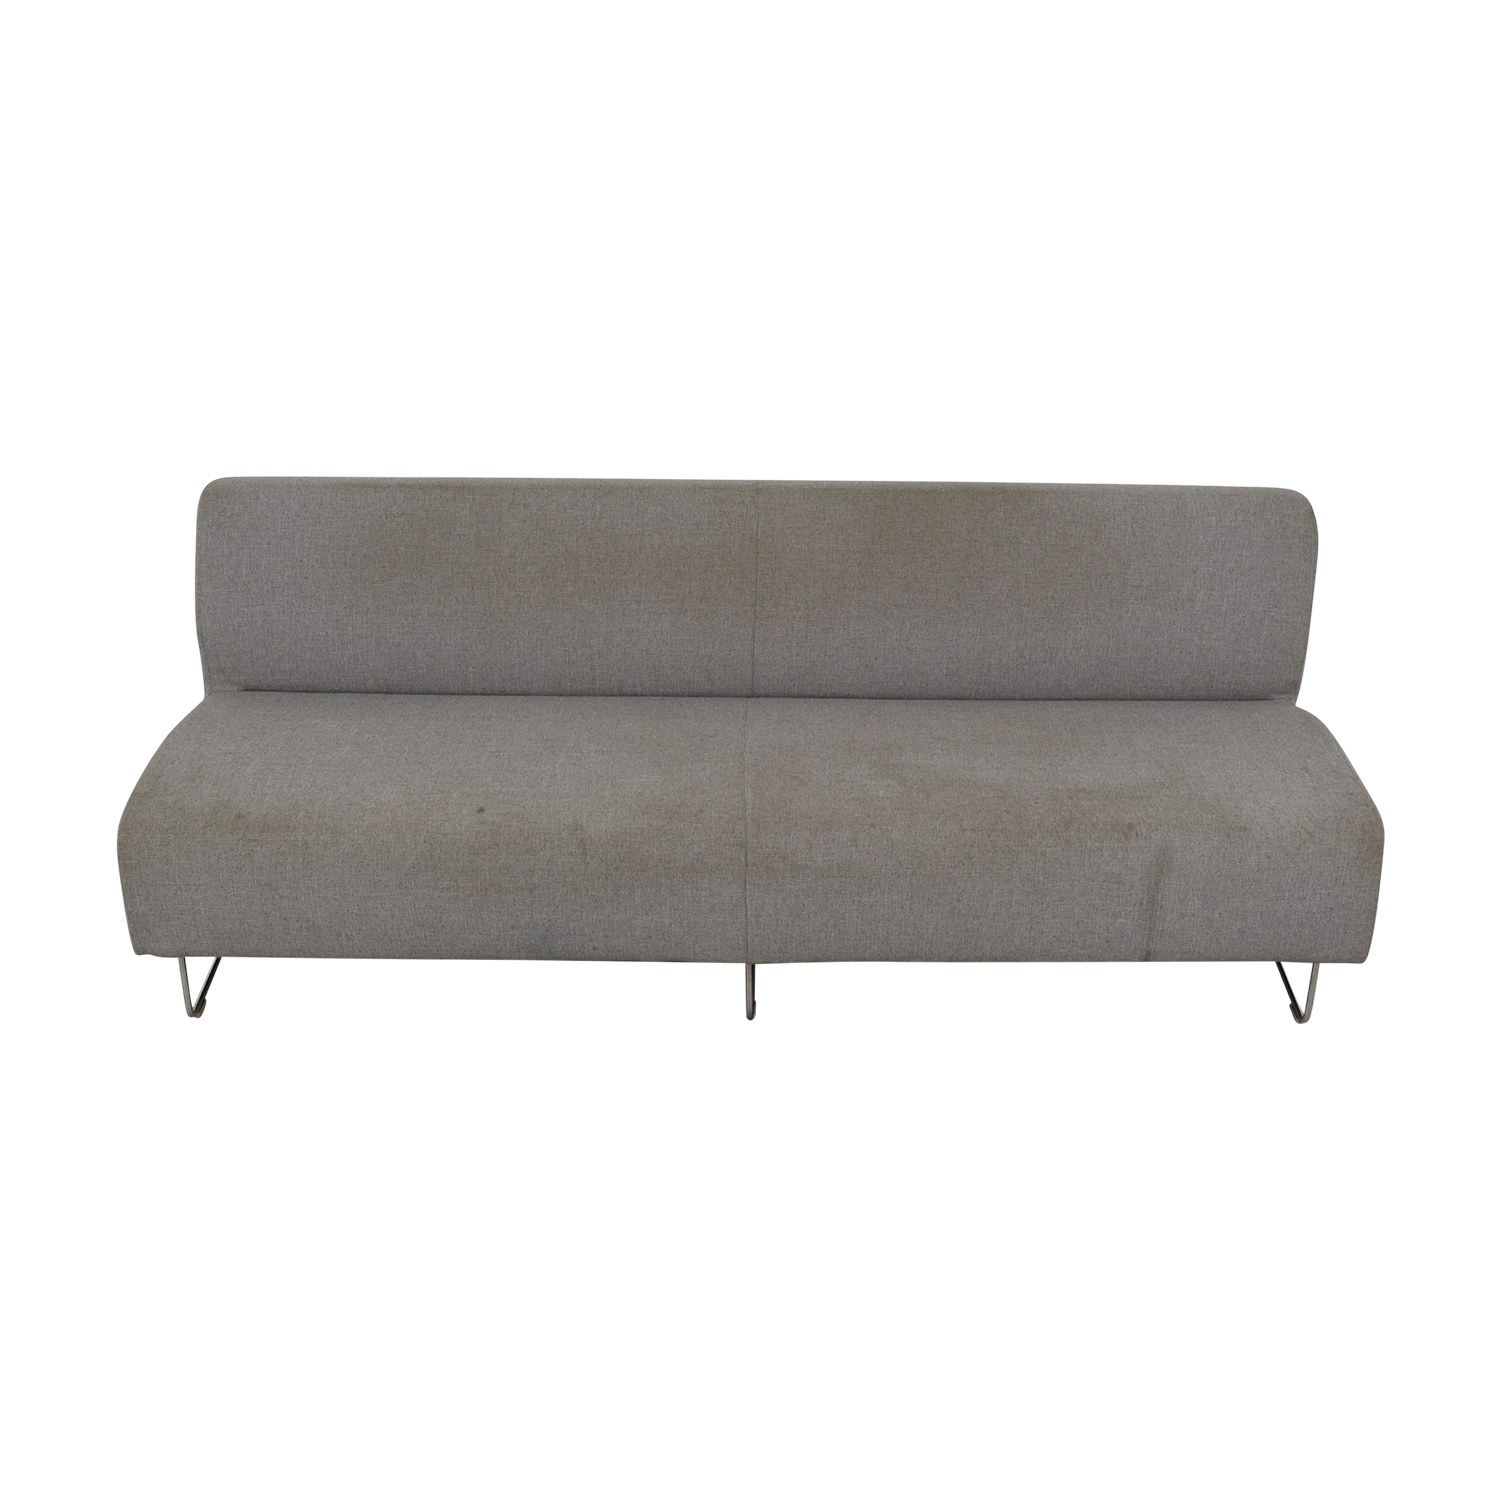 Modern Single Cushion Sofa nj